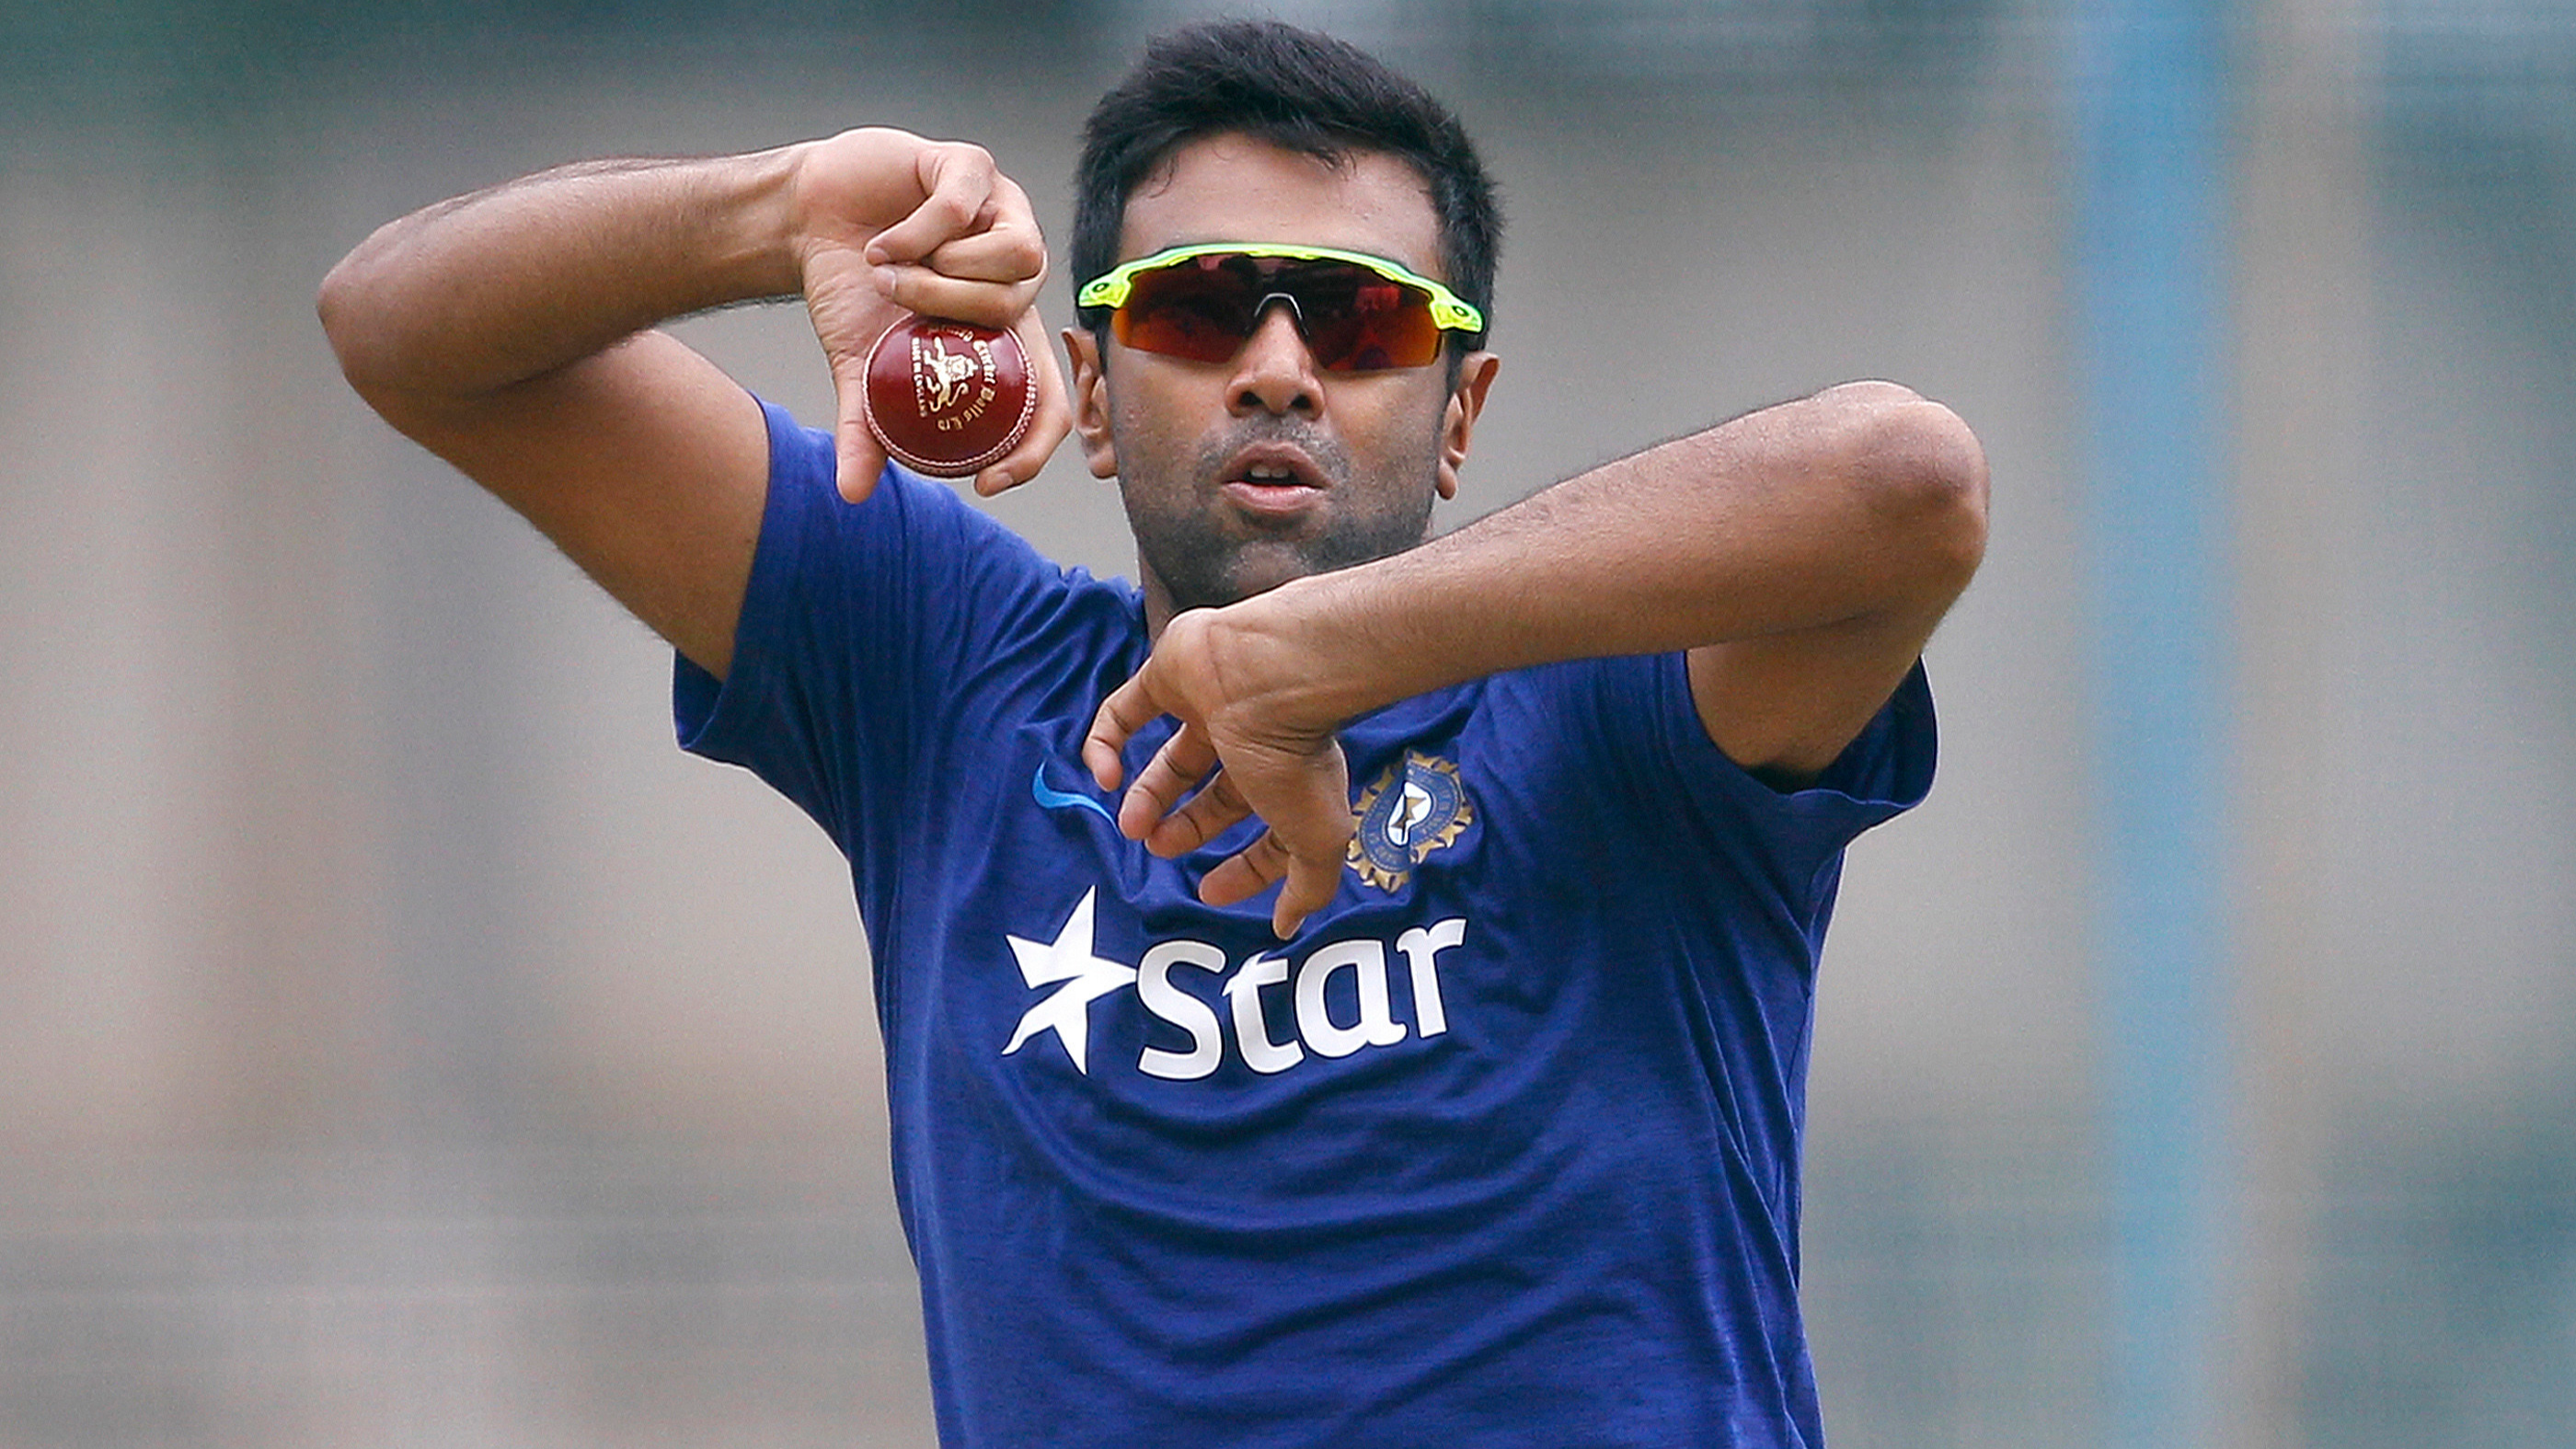 Ravichandran Ashwin to miss the Deodhar Trophy due to injury